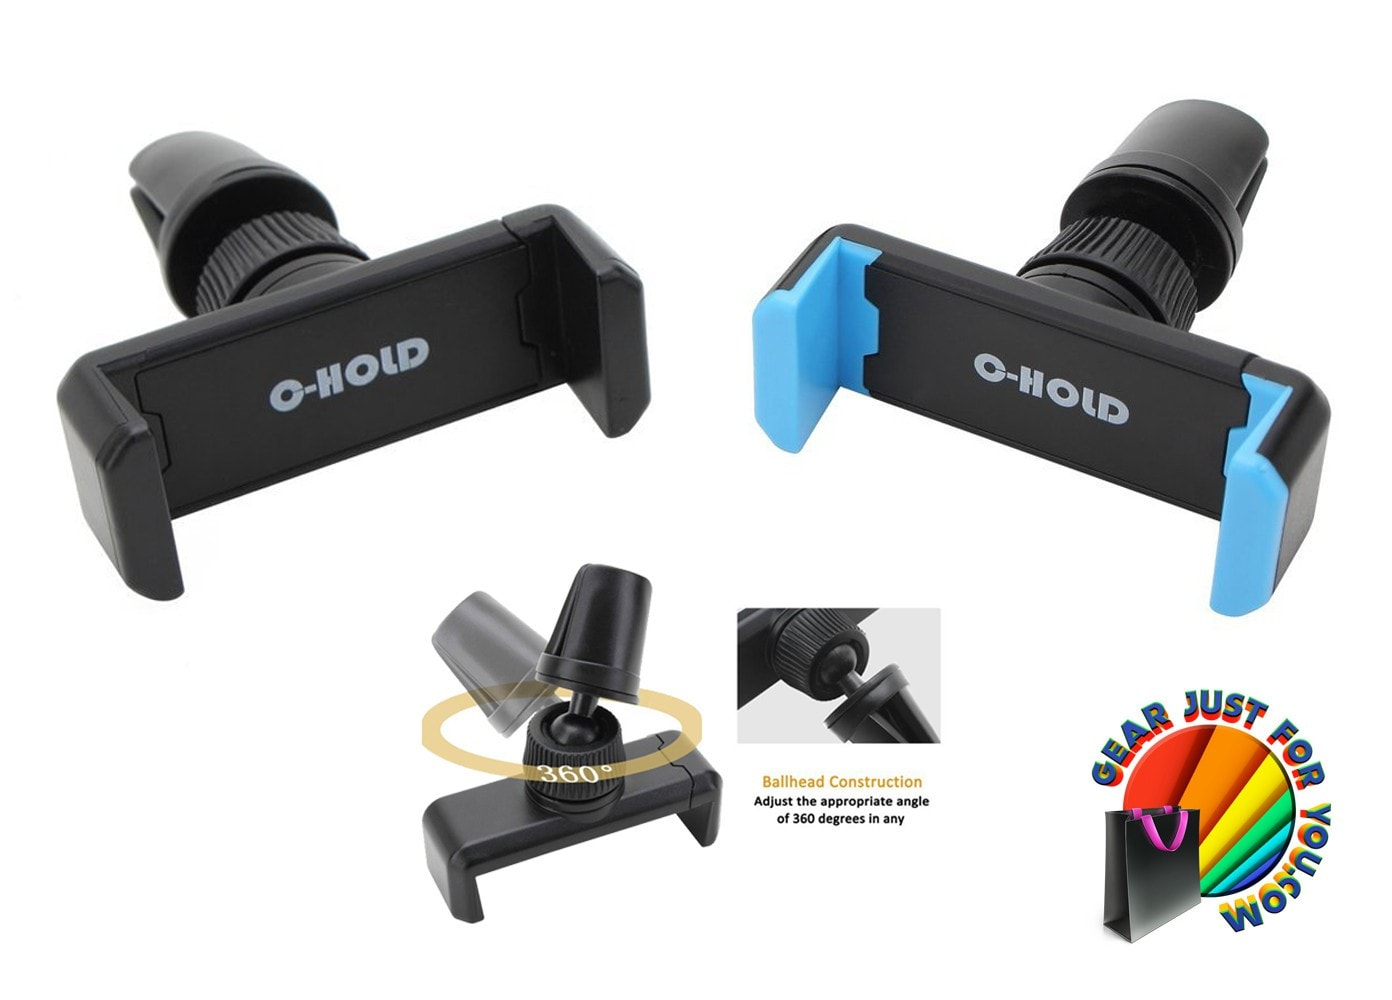 C Hold Air Vent 360 Rotate Mount Holder For Smart Phones Gear Car Ventilation T360 Just